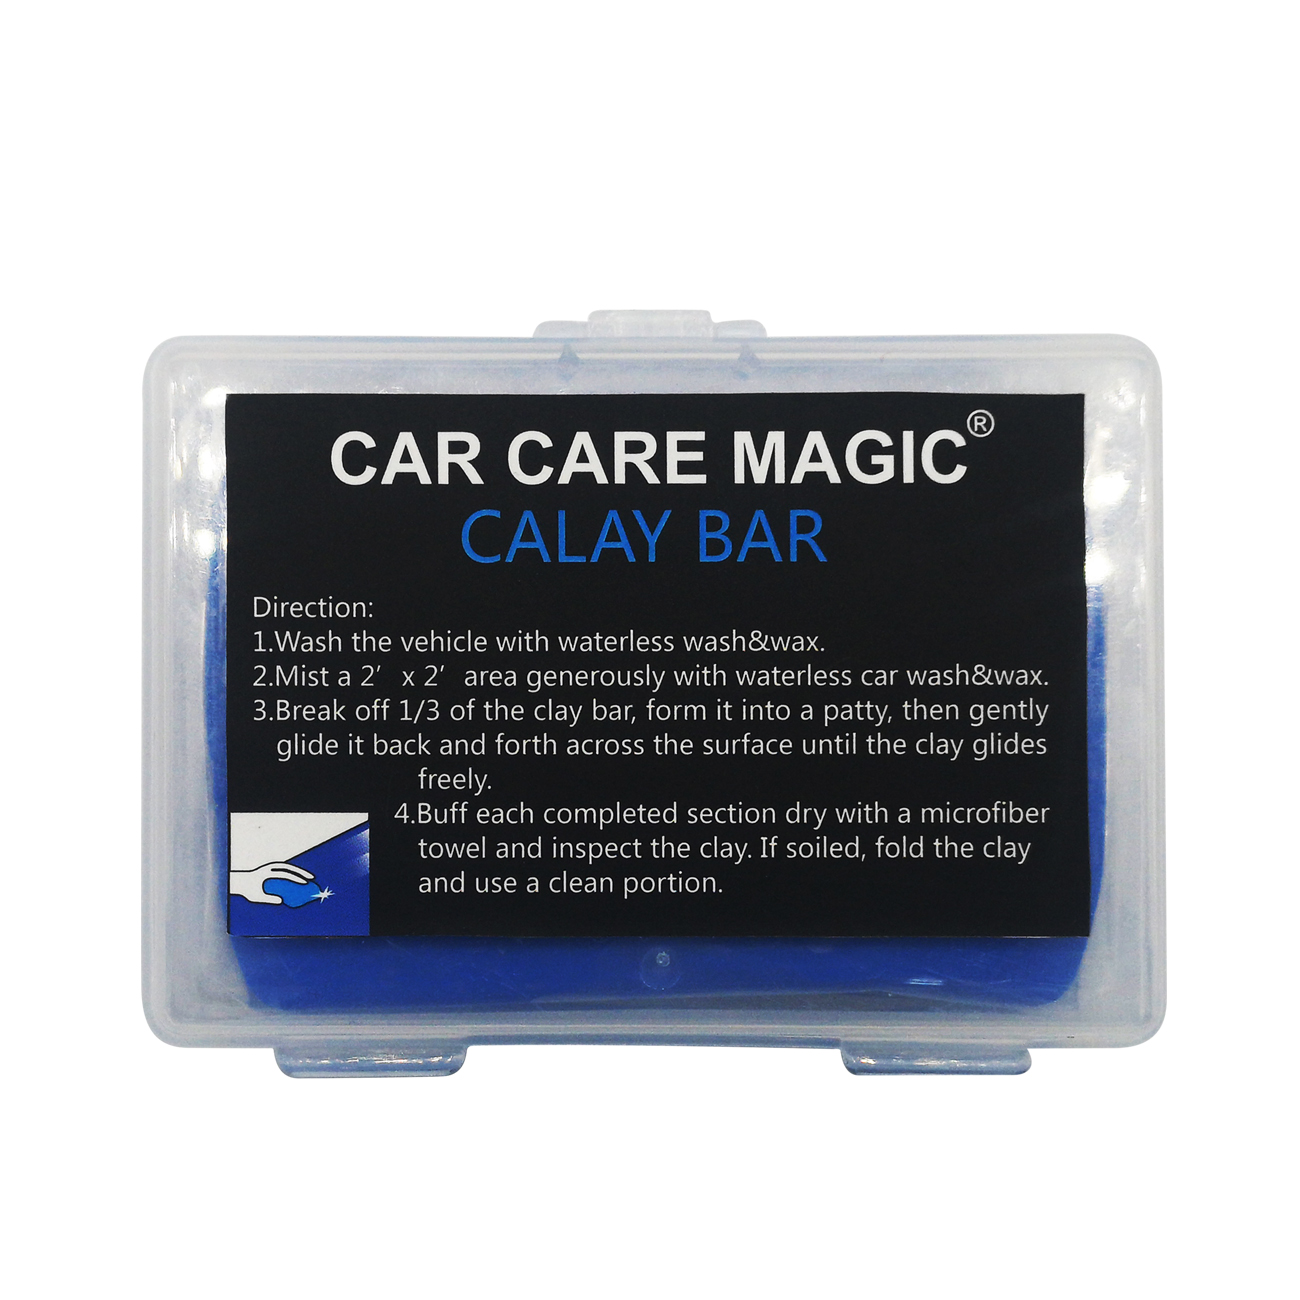 Car Care Magic car cleaner kit waterless wash & wax spray dry cleaner with private label